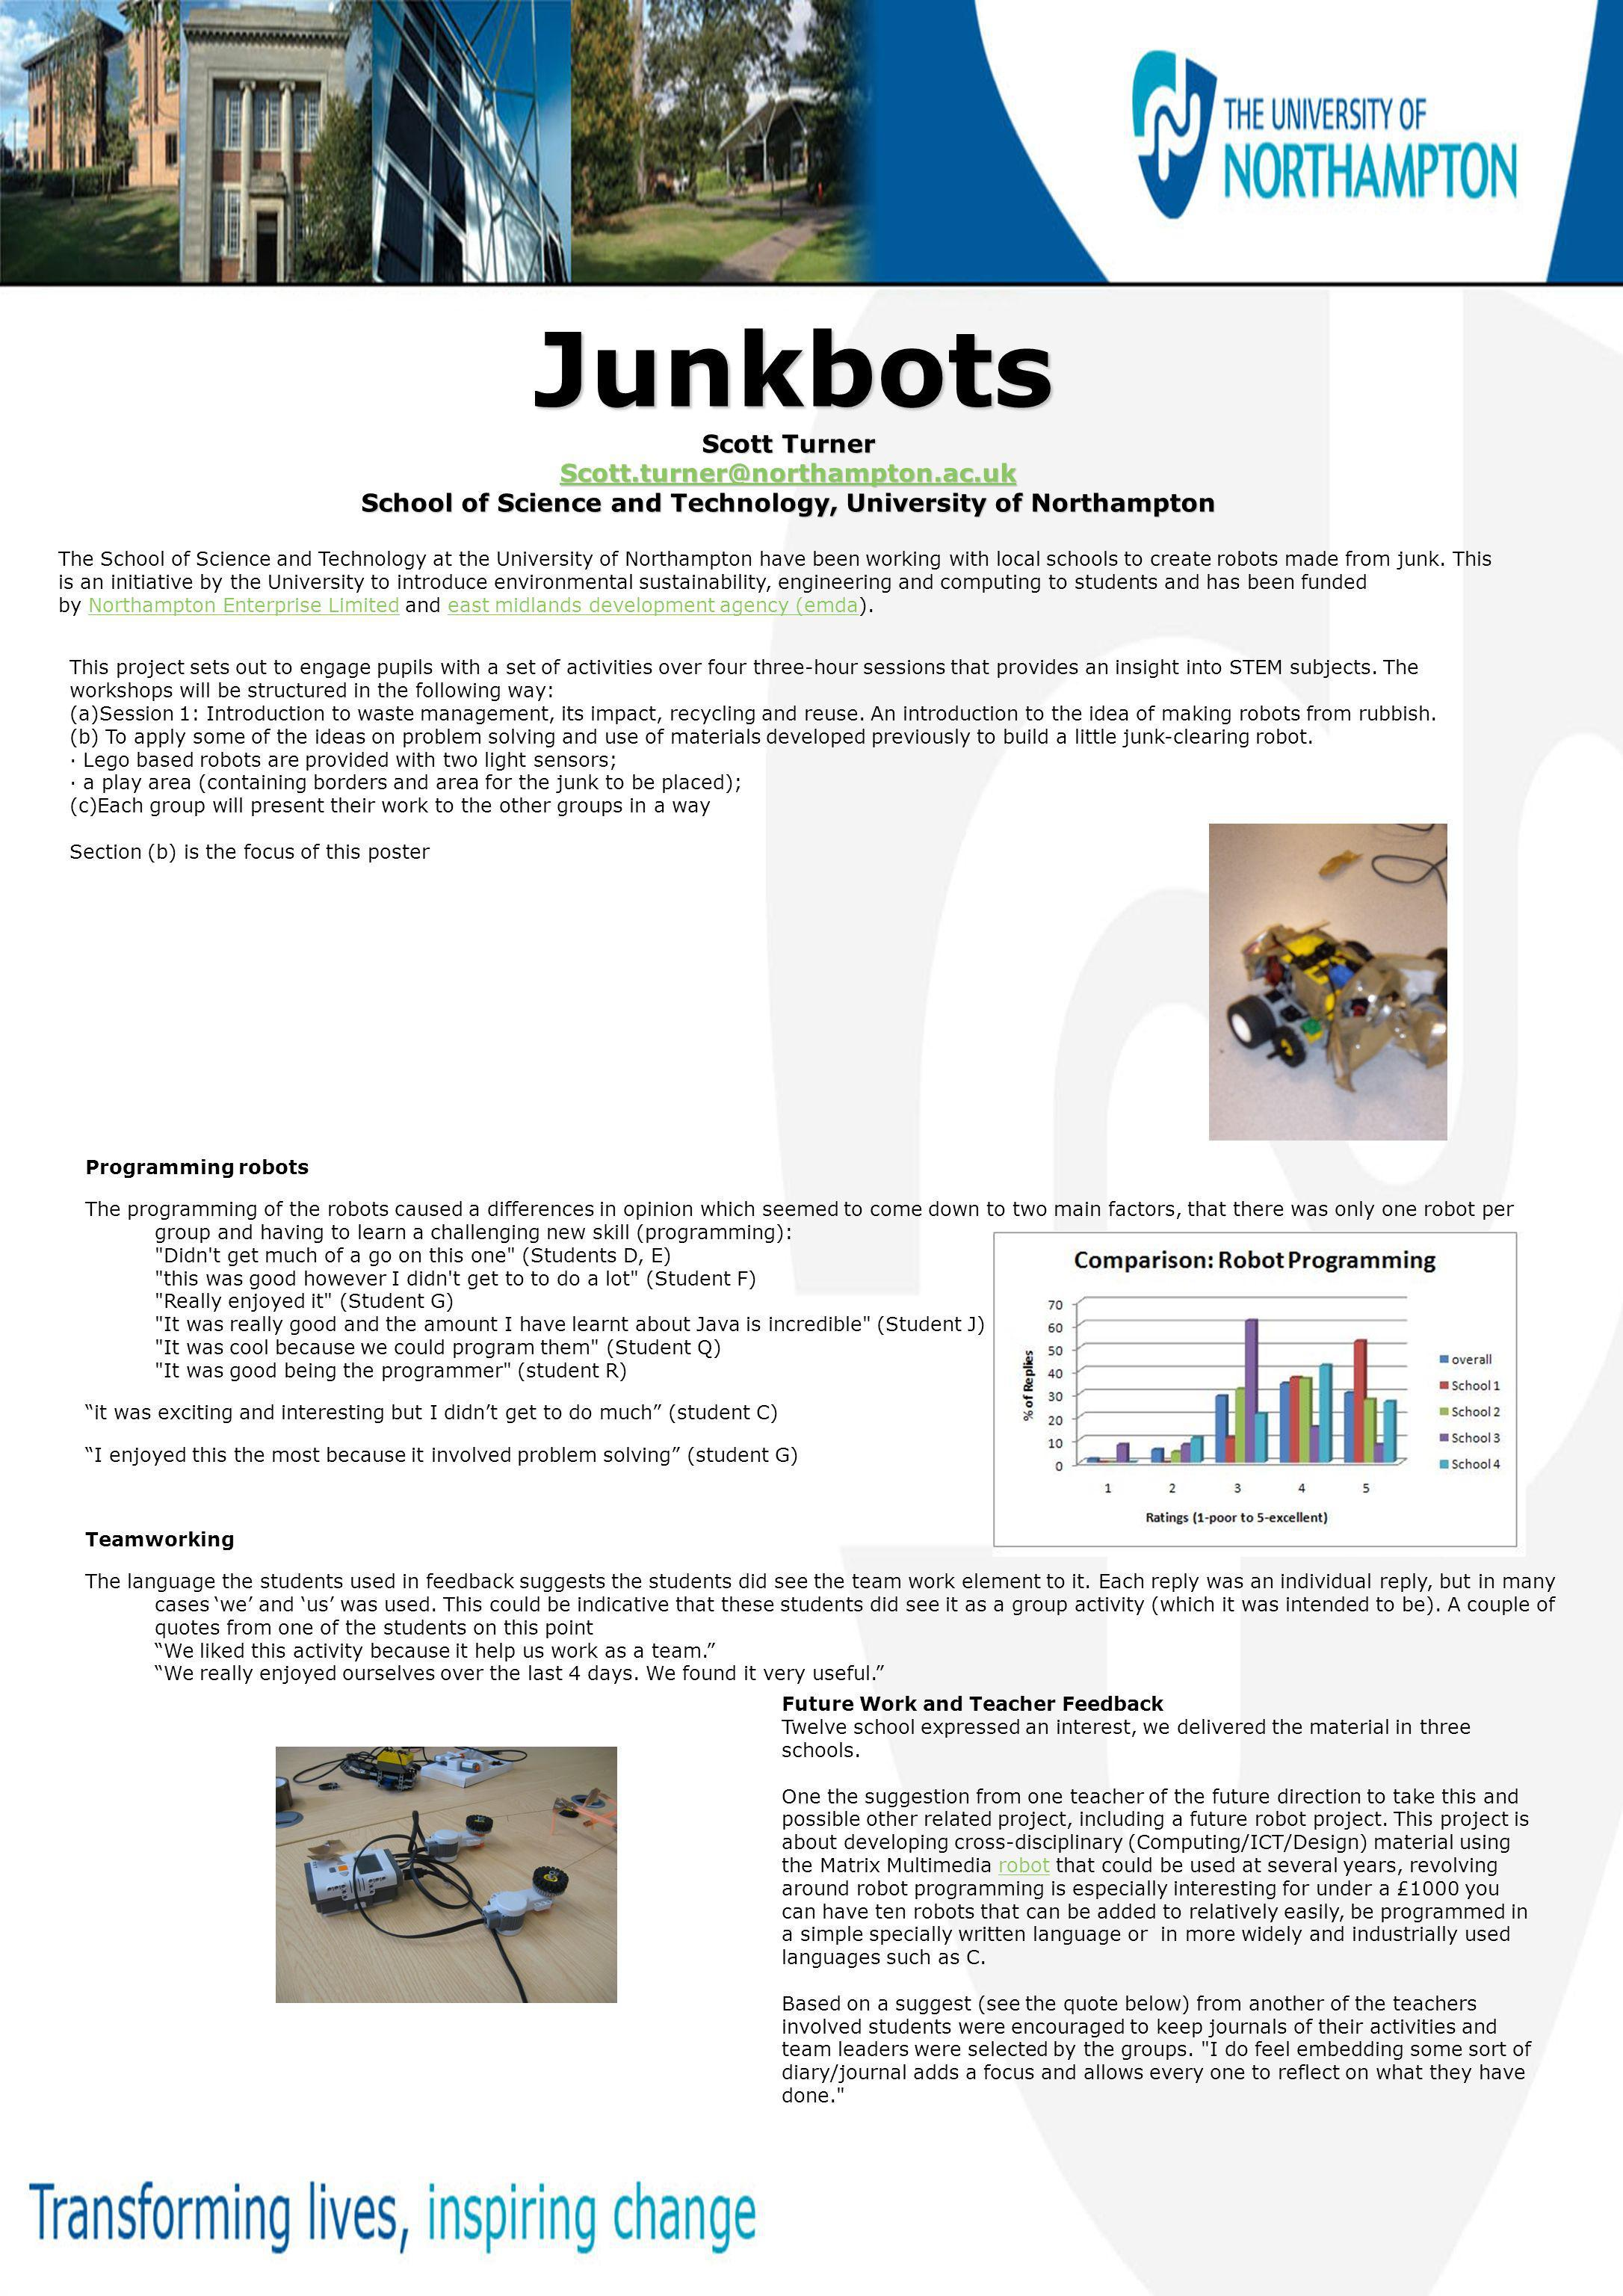 Junkbots Junkbots Scott Turner Scott.turner@northampton.ac.uk School of Science and Technology, University of Northampton The School of Science and Technology at the University of Northampton have been working with local schools to create robots made from junk.